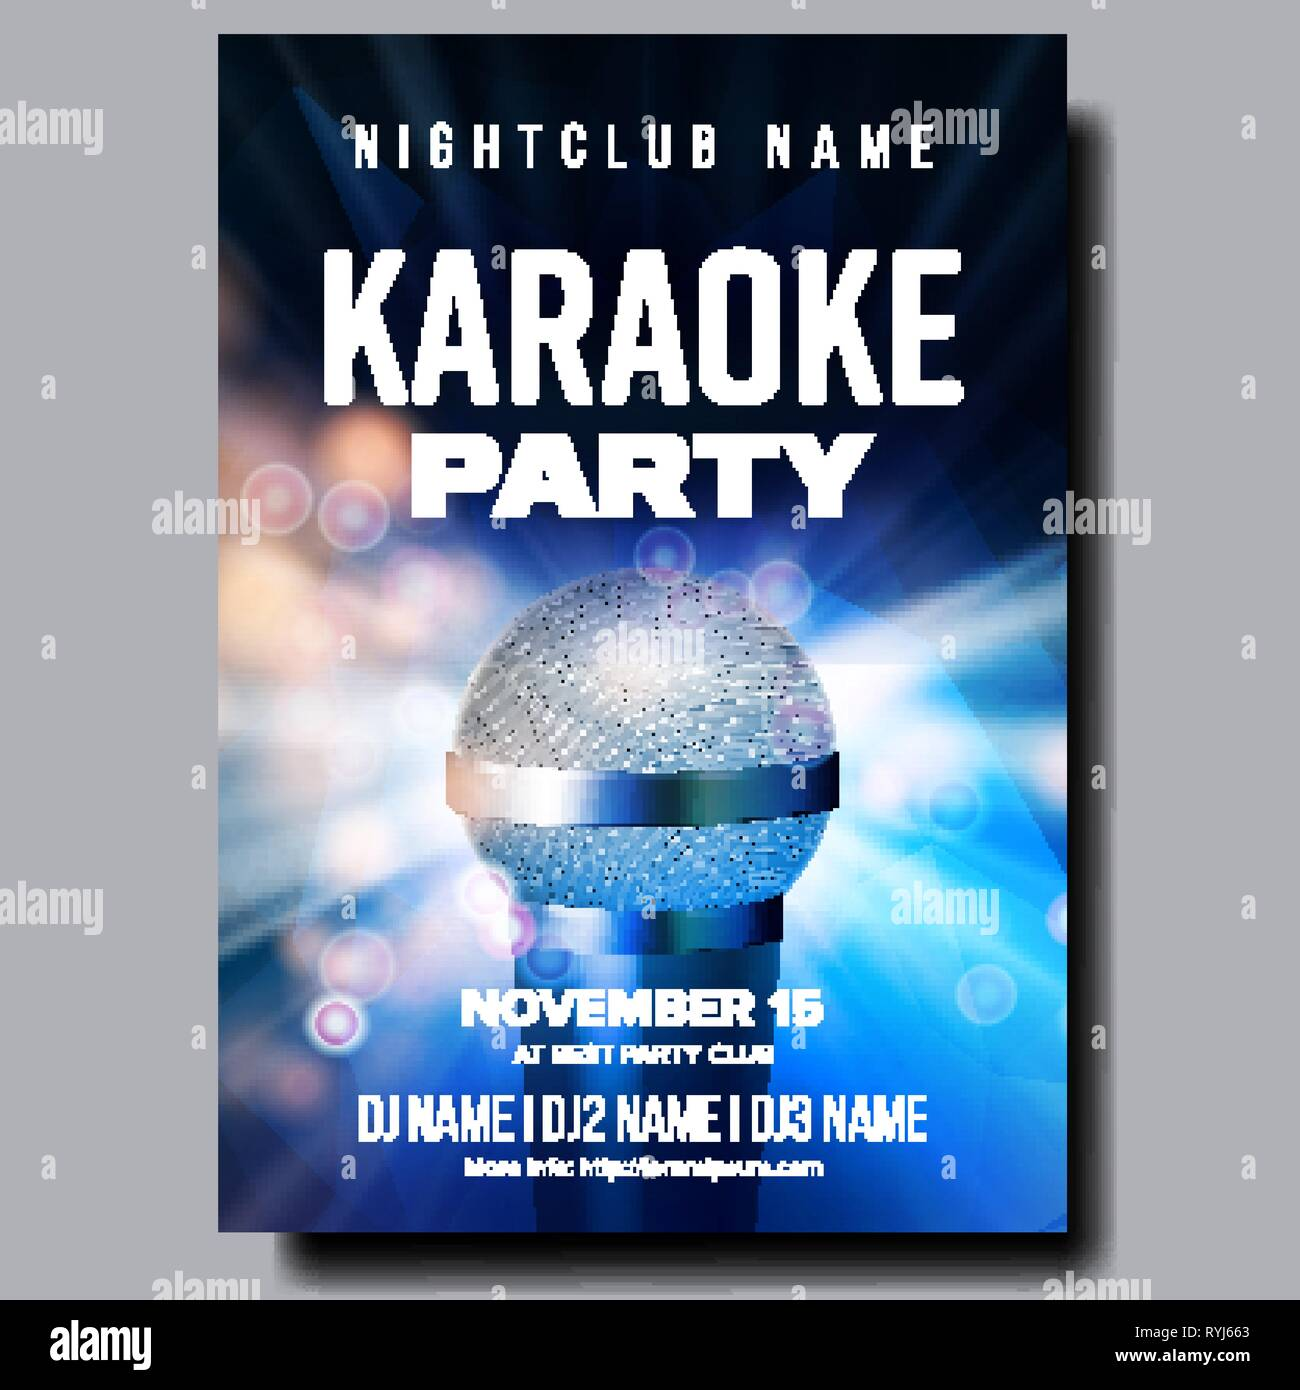 Karaoke Poster Vector. Colorful Instrument. Technology Symbol. Karaoke Party Flyer. Music Night. Radio Microphone. Retro Concert. Competition. Media - Stock Image